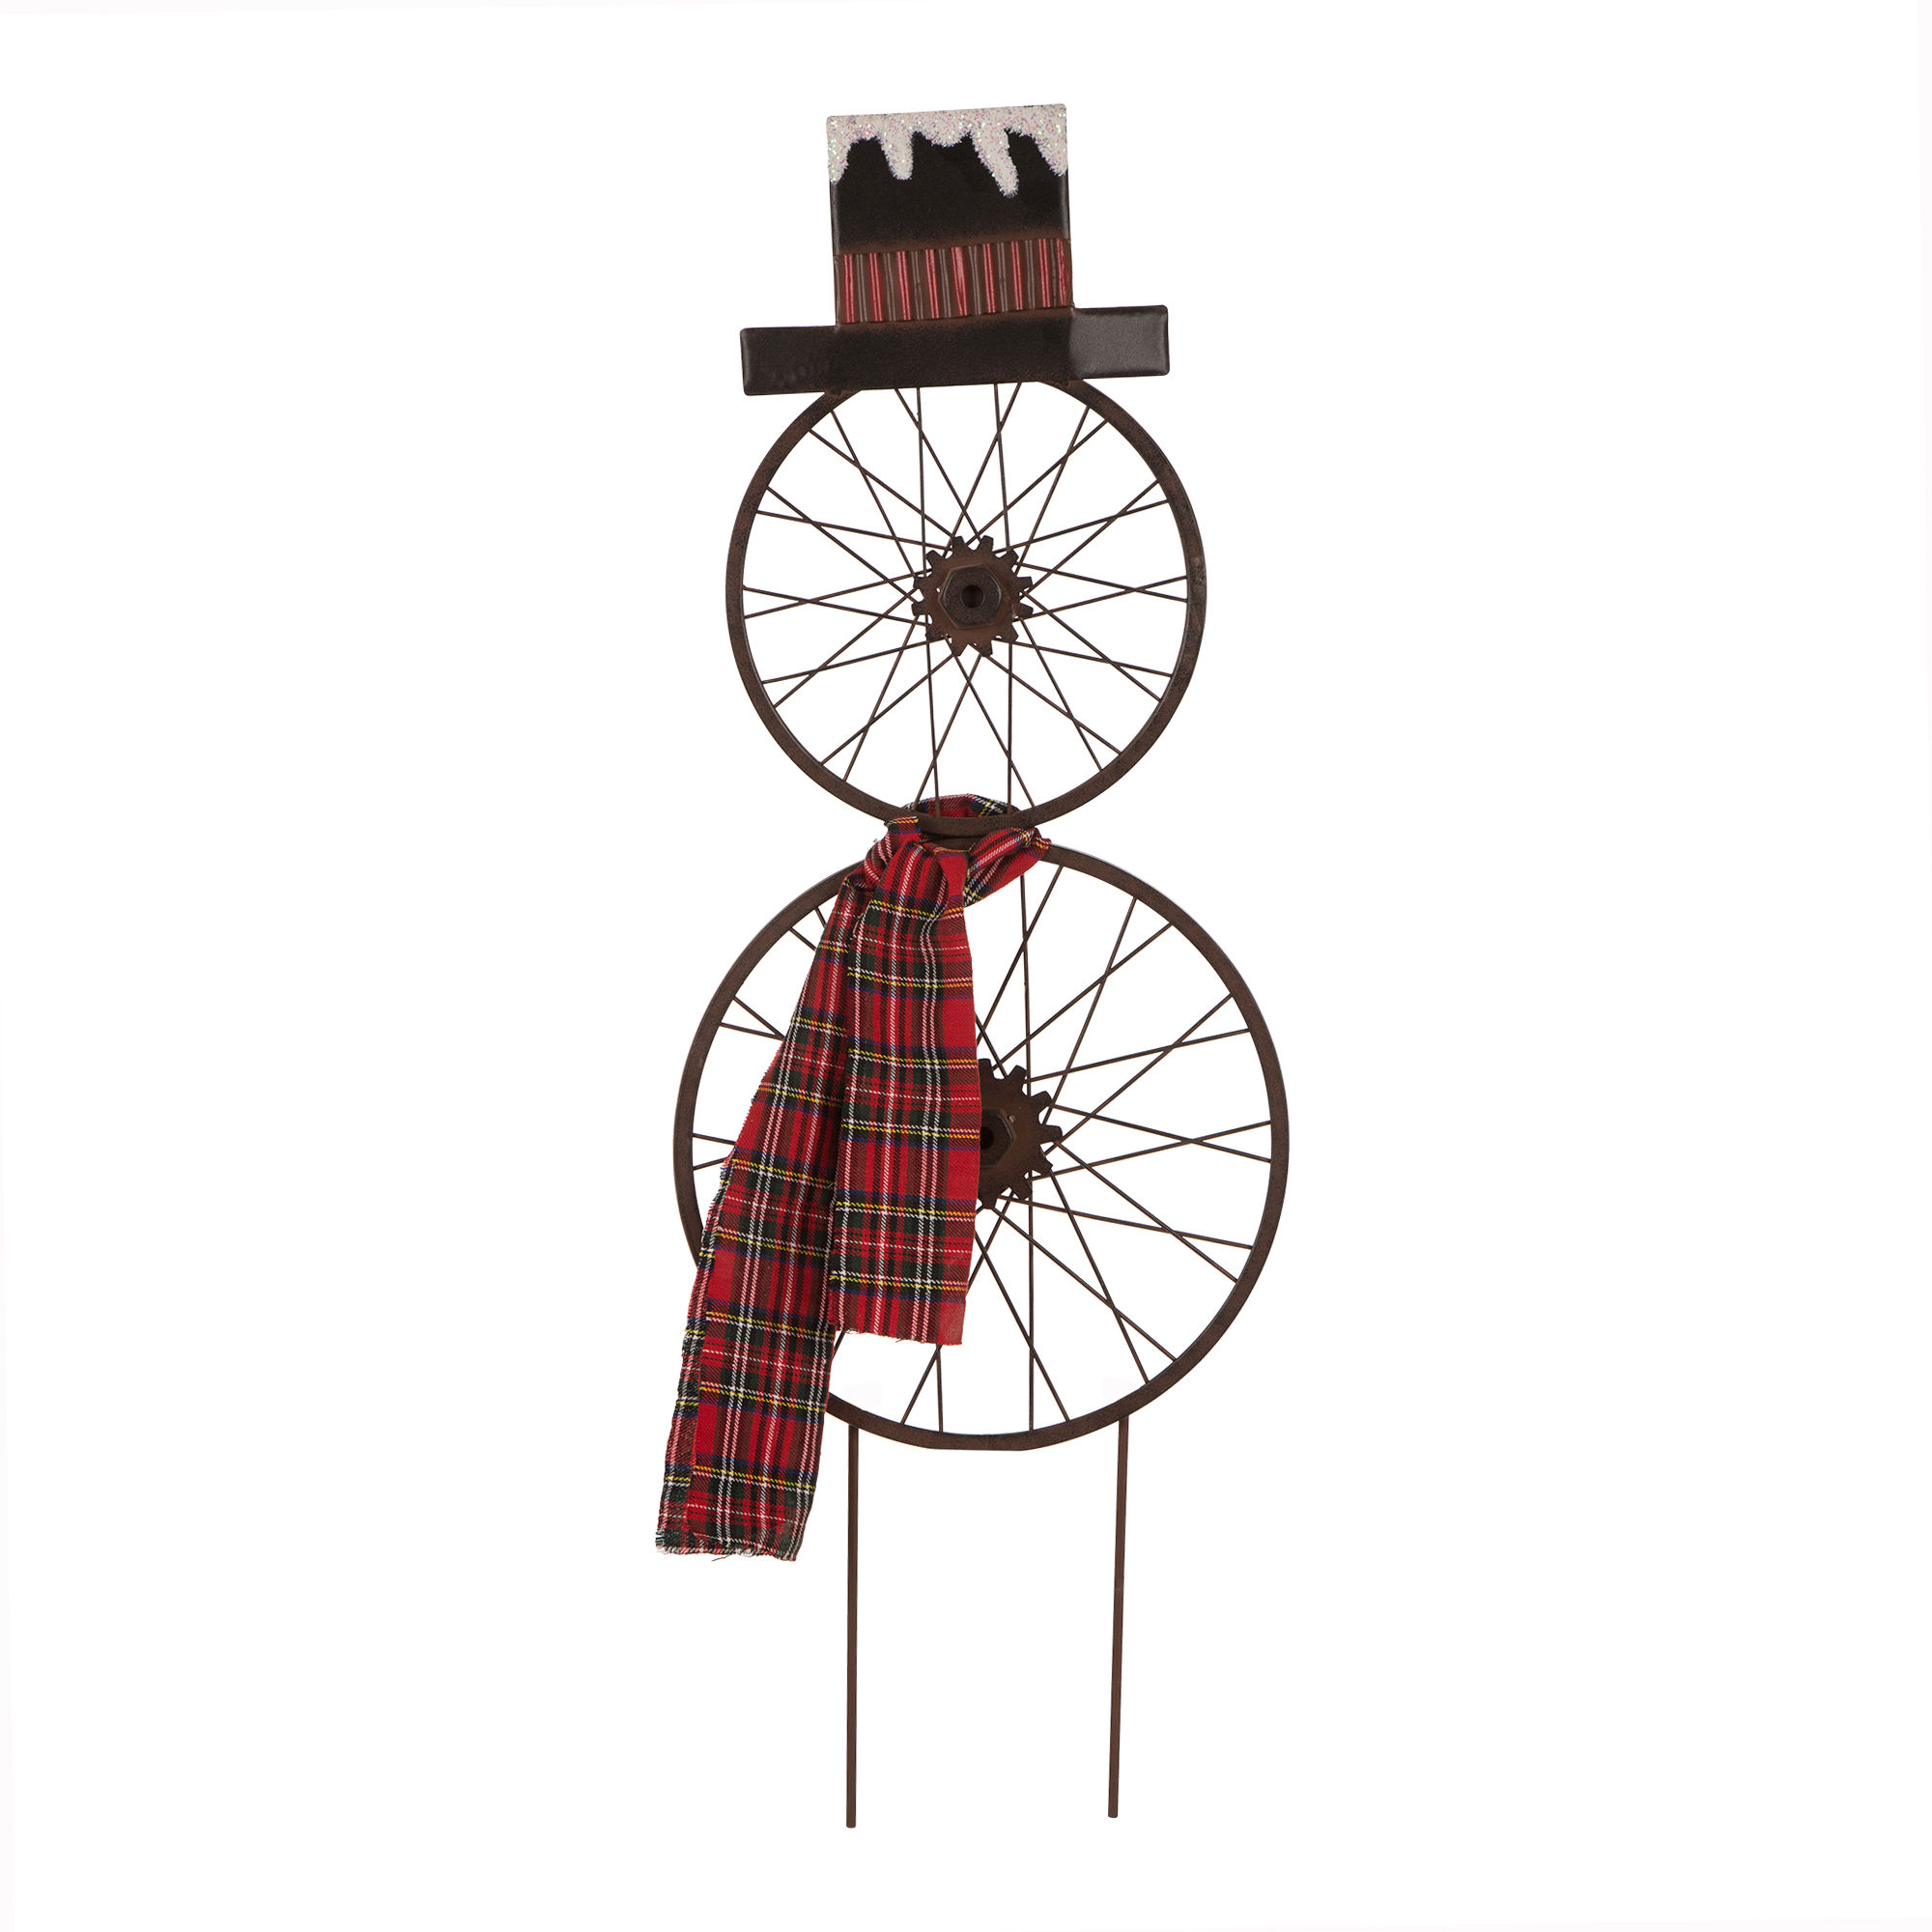 Glizhome Metal Bike Wheel Snowman Yard Stake With Plaid